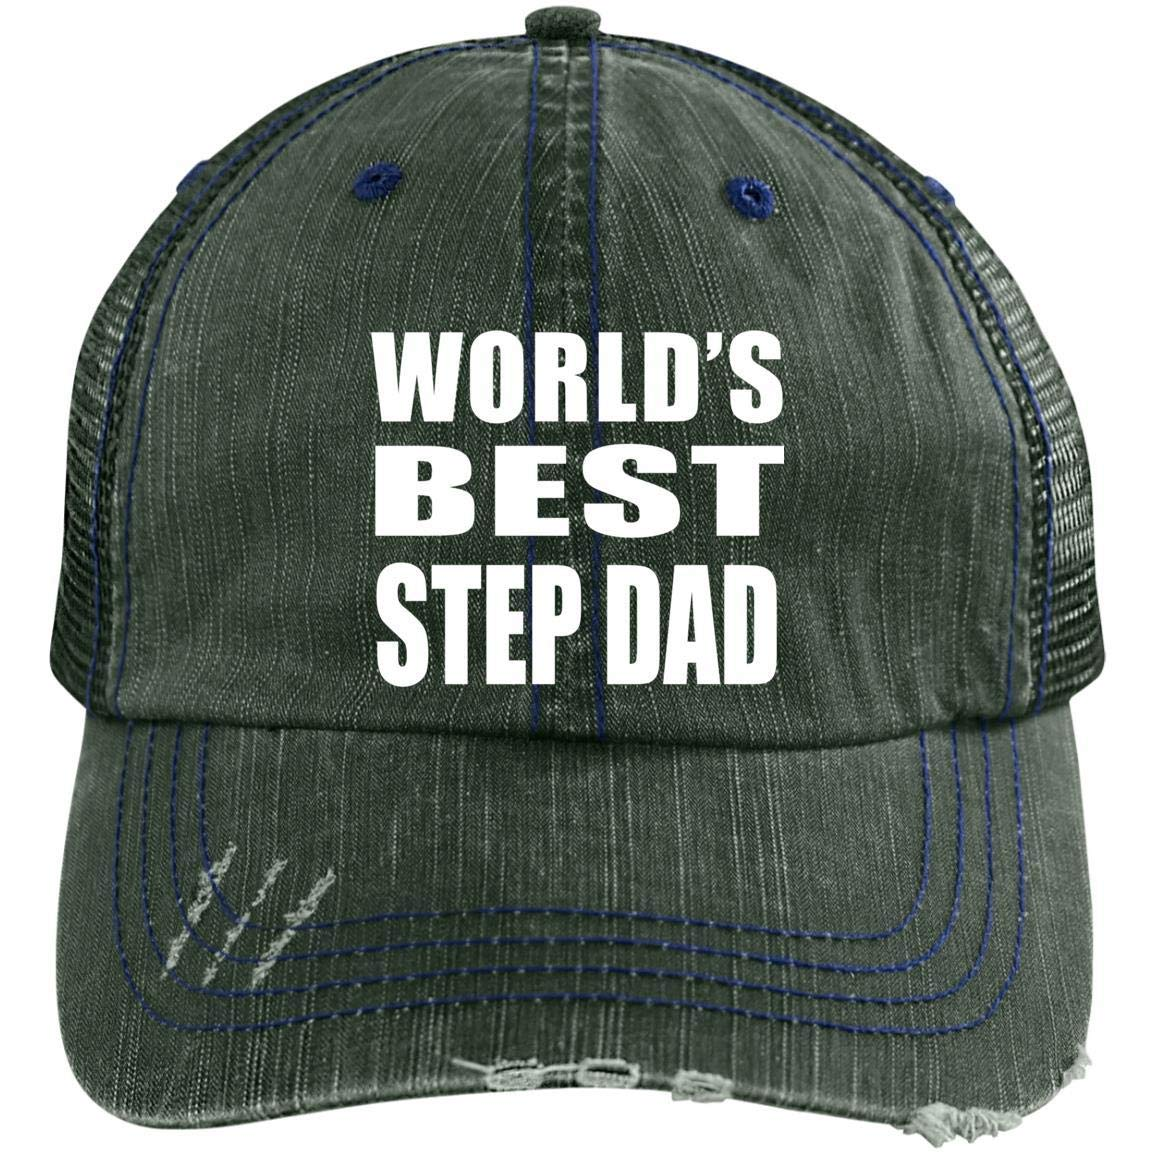 e63eff2542d Amazon.com  World s Best Step Dad - Distressed Trucker Cap Brown Navy One  Size  Clothing